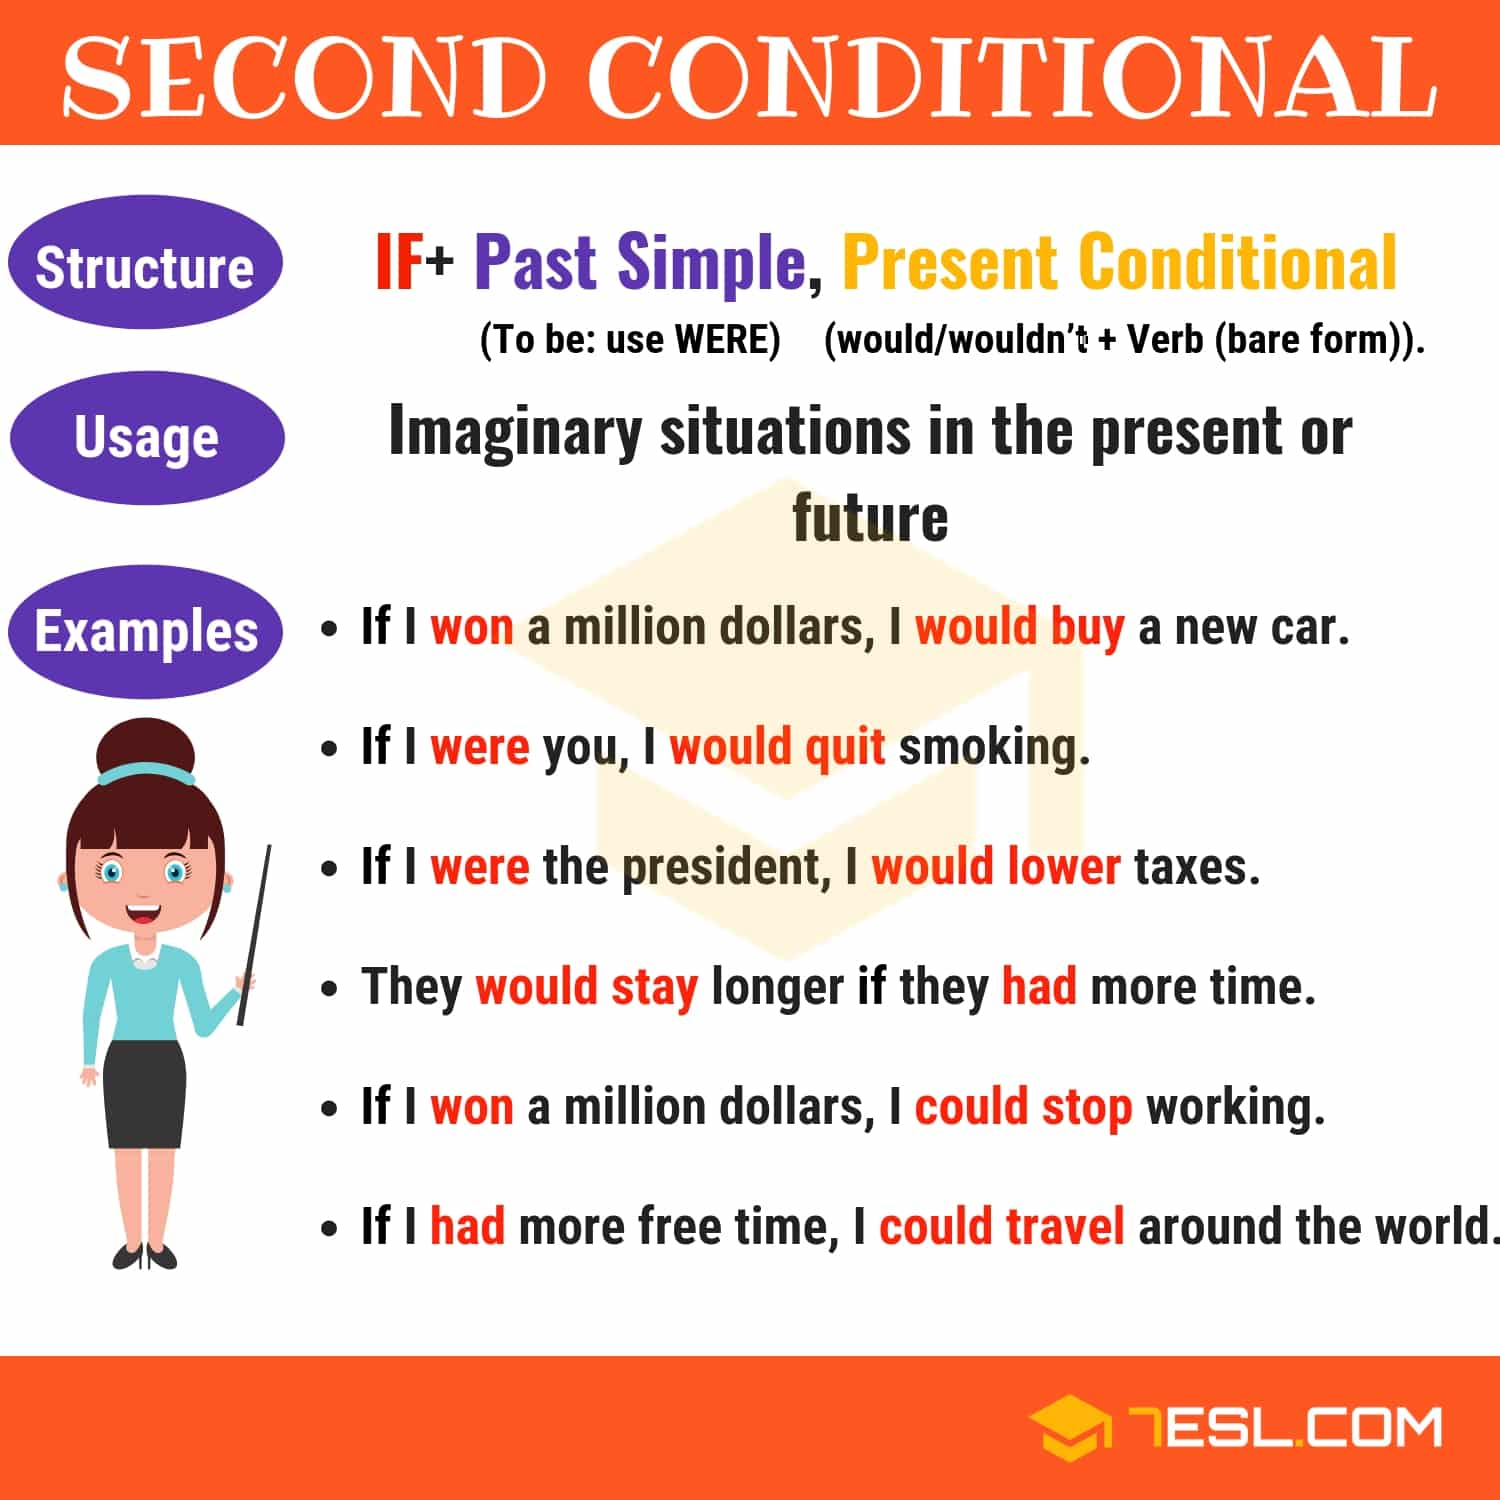 The Second Conditional Conditional Sentences Type 2 Usage